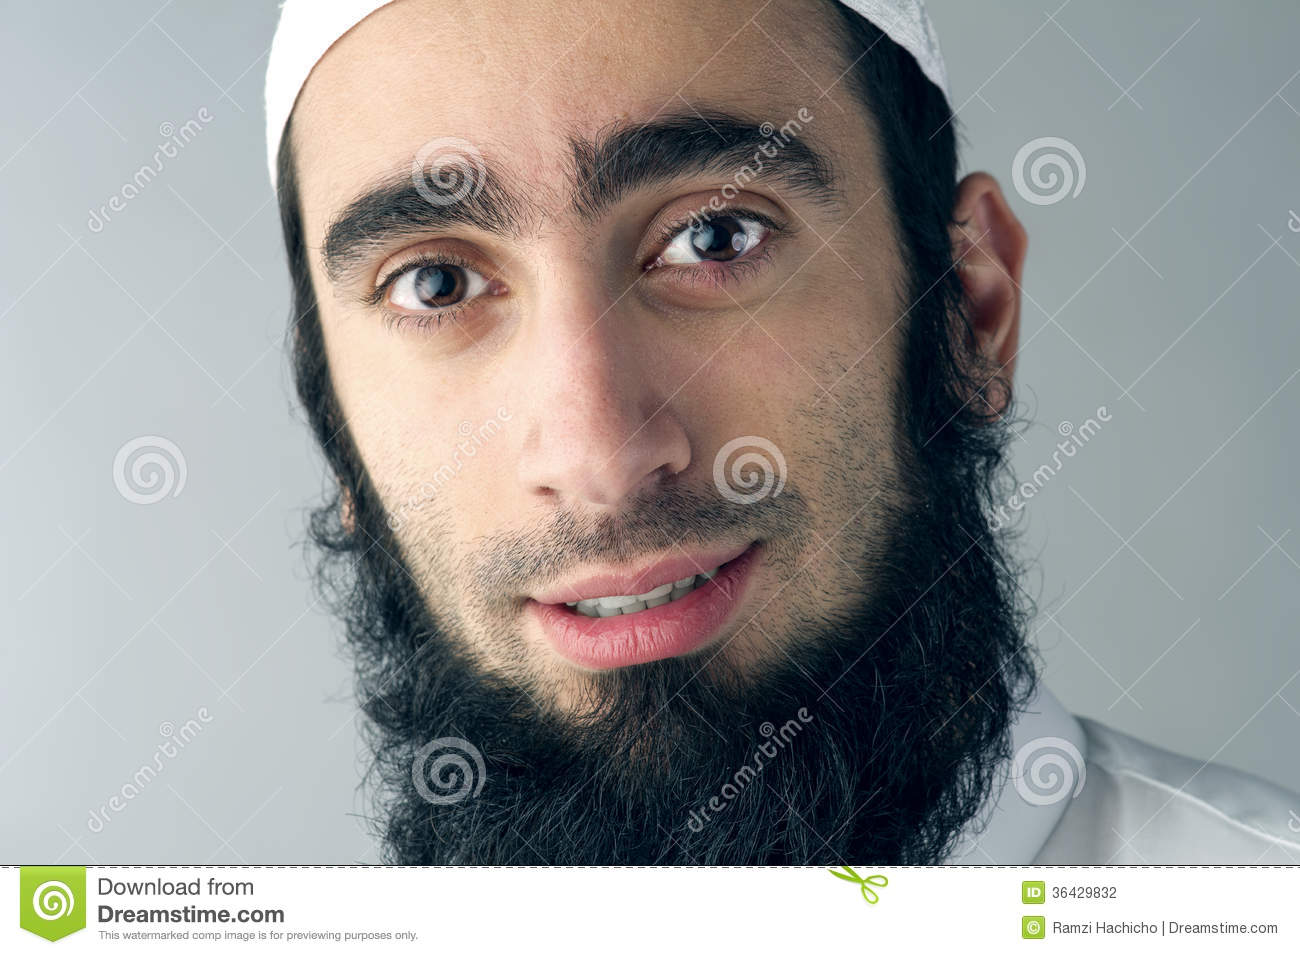 gillett muslim Gillett muslim personals casual dating with hot persons.